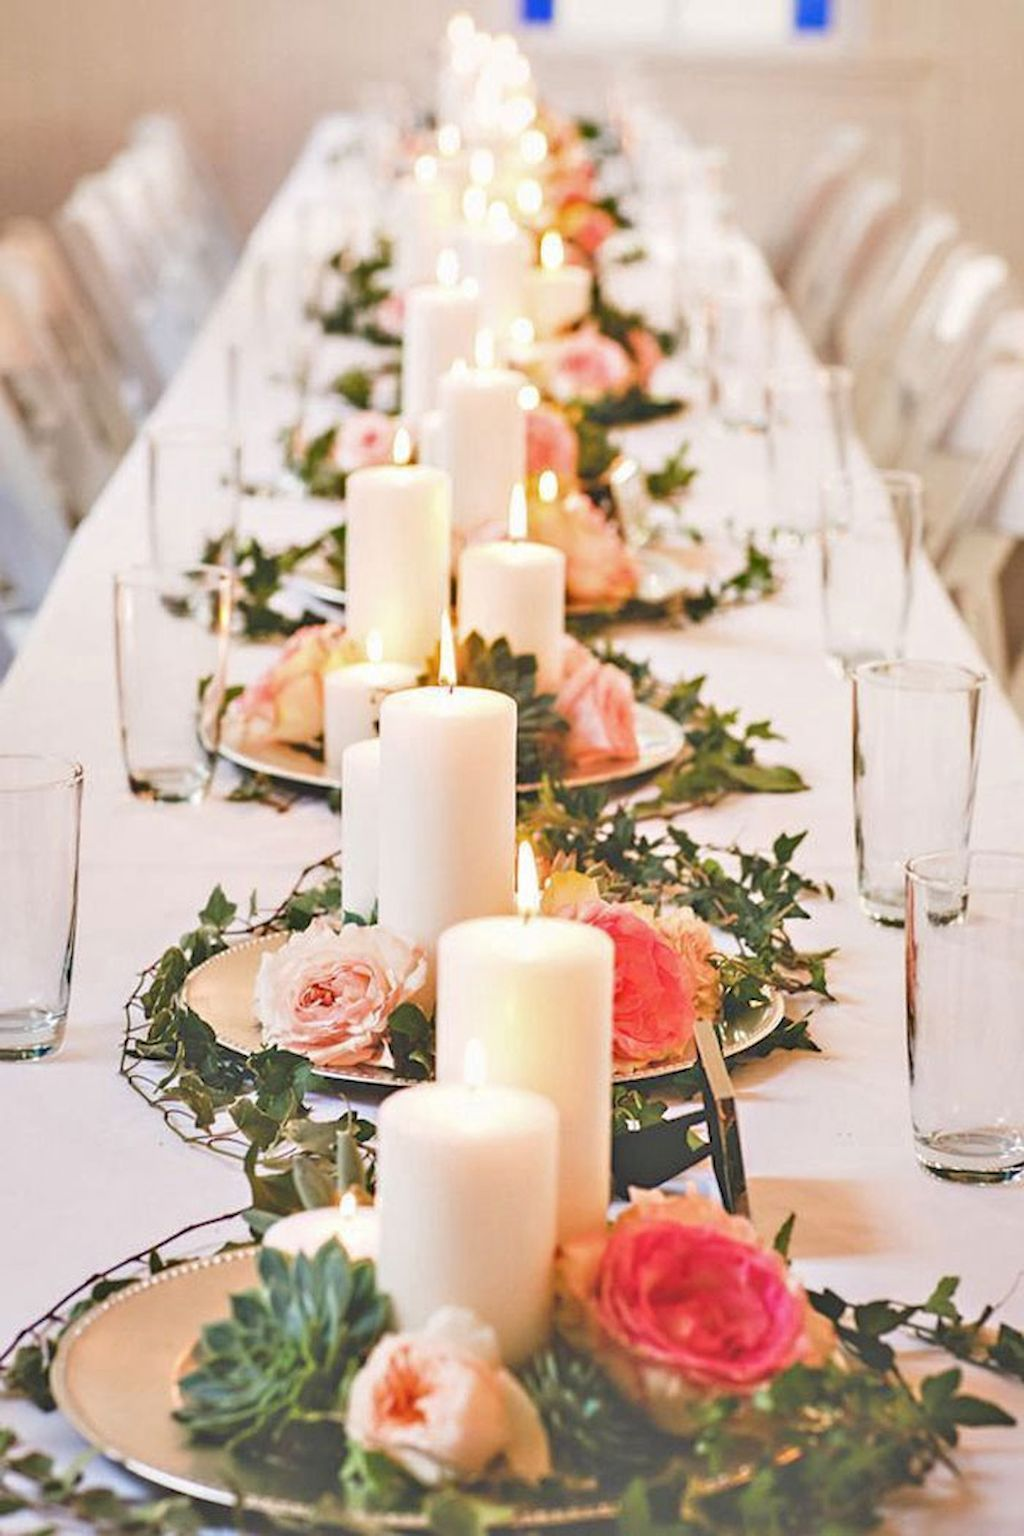 Wedding decoration ideas at home   Simple Greenery Wedding Centerpieces Decor Ideas  Home Deco